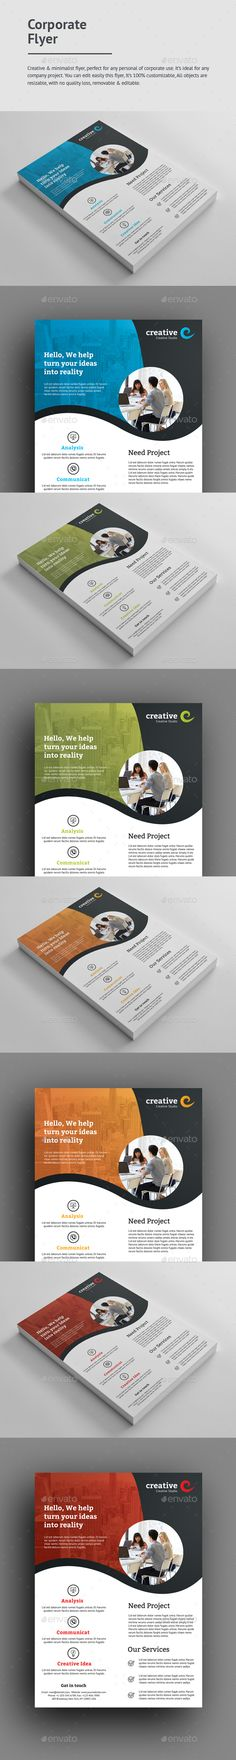 #Corporate #Flyer - Corporate Flyers Download here: https://graphicriver.net/item/corporate-flyer/19464125?ref=alena994